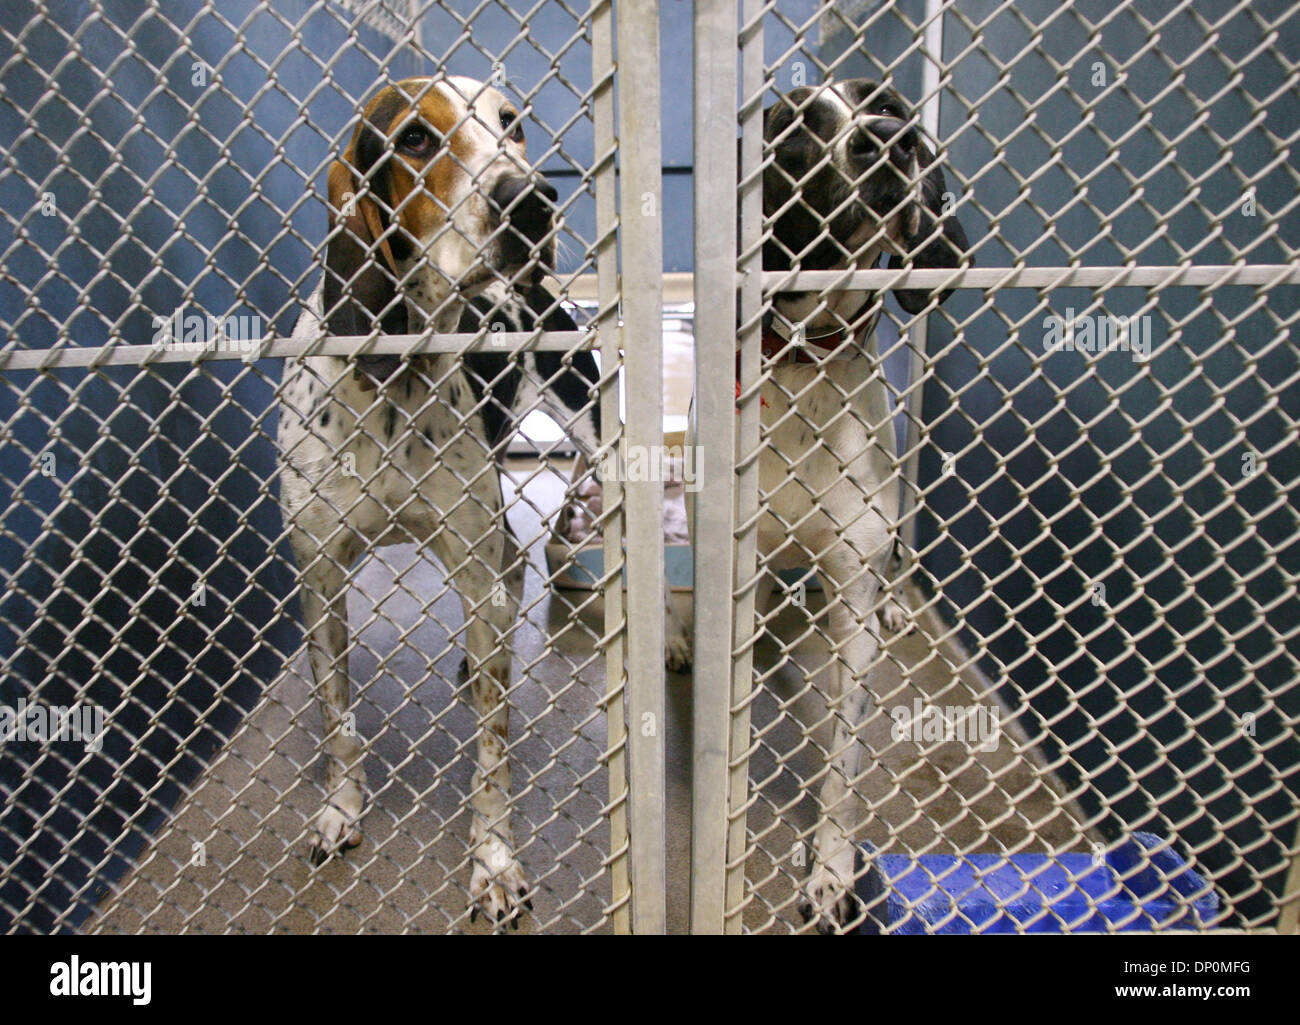 Mar 27, 2006; Palm Beach, FL, USA; Potenial adoptees are caged together due to a lack of space at the Palm Beach - Stock Image